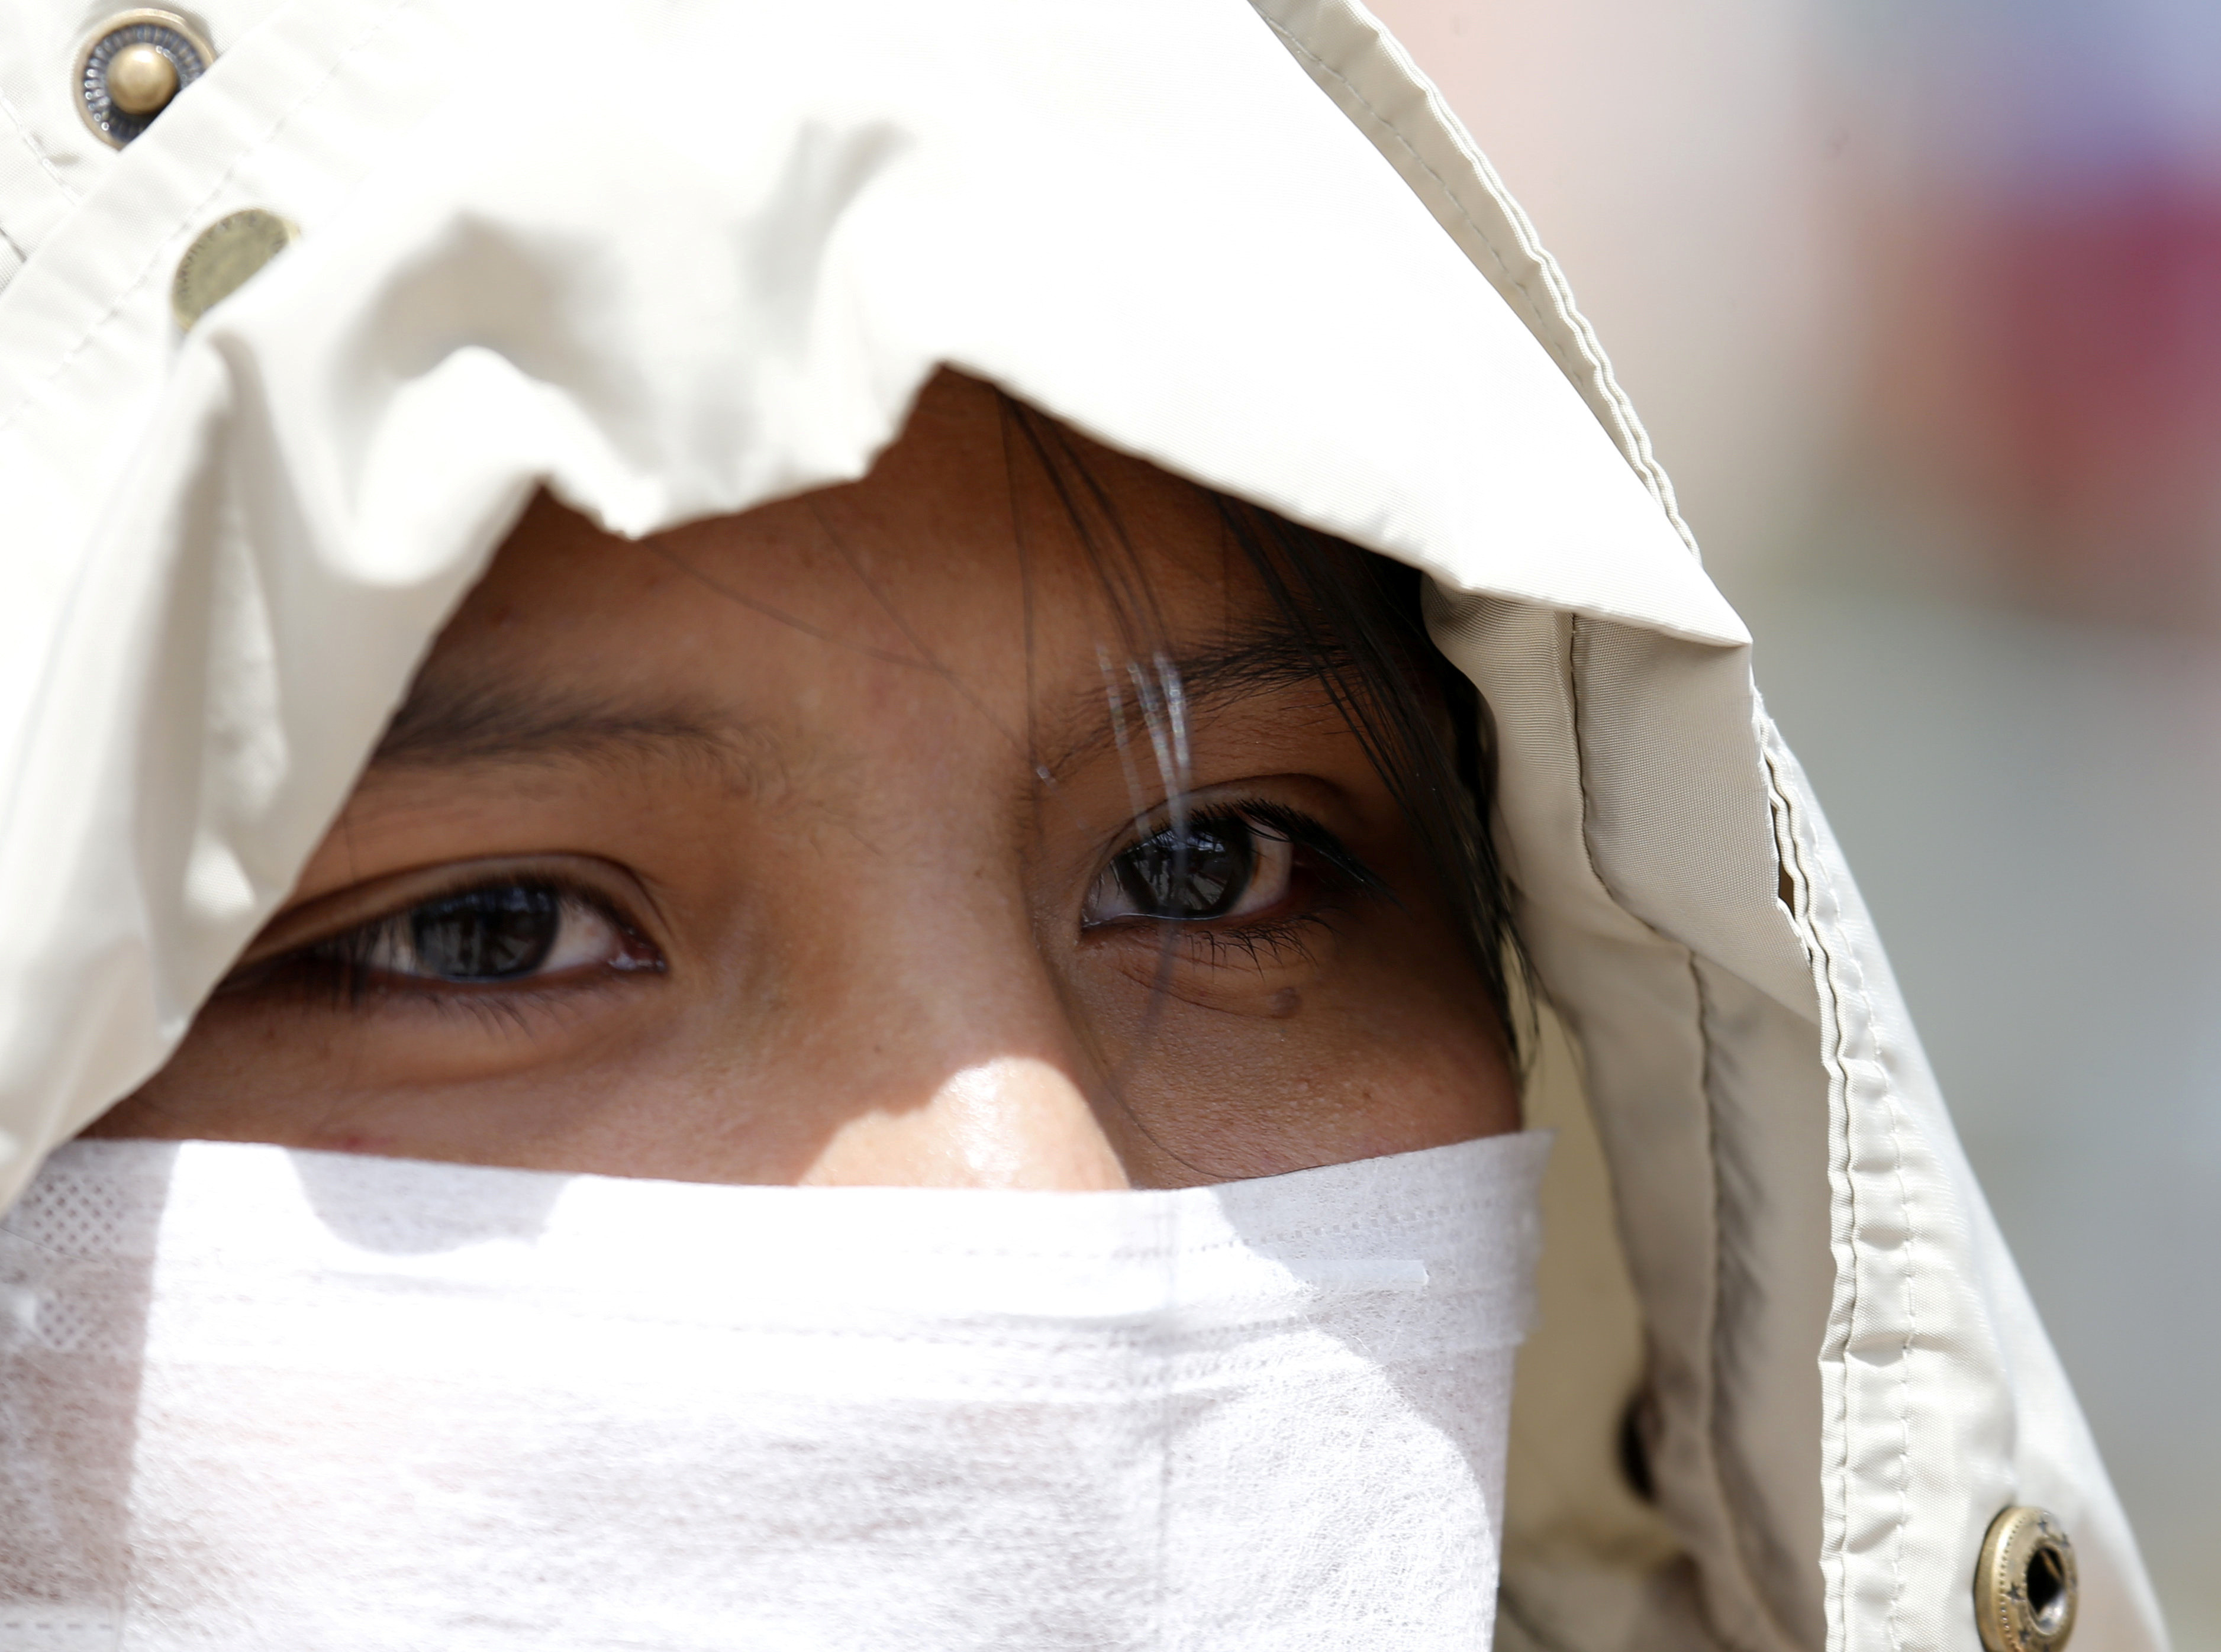 Mariluna Apaza, a stranded Peruvian passenger, talks with Reuters at the border line between Peru and Bolivia after Peru's government's announcement of border closure in a bid to slow the spread of the new coronavirus (COVID-19), in Desaguadero, Bolivia, March 17, 2020. REUTERS/David Mercado - RC2YLF9Z12TR